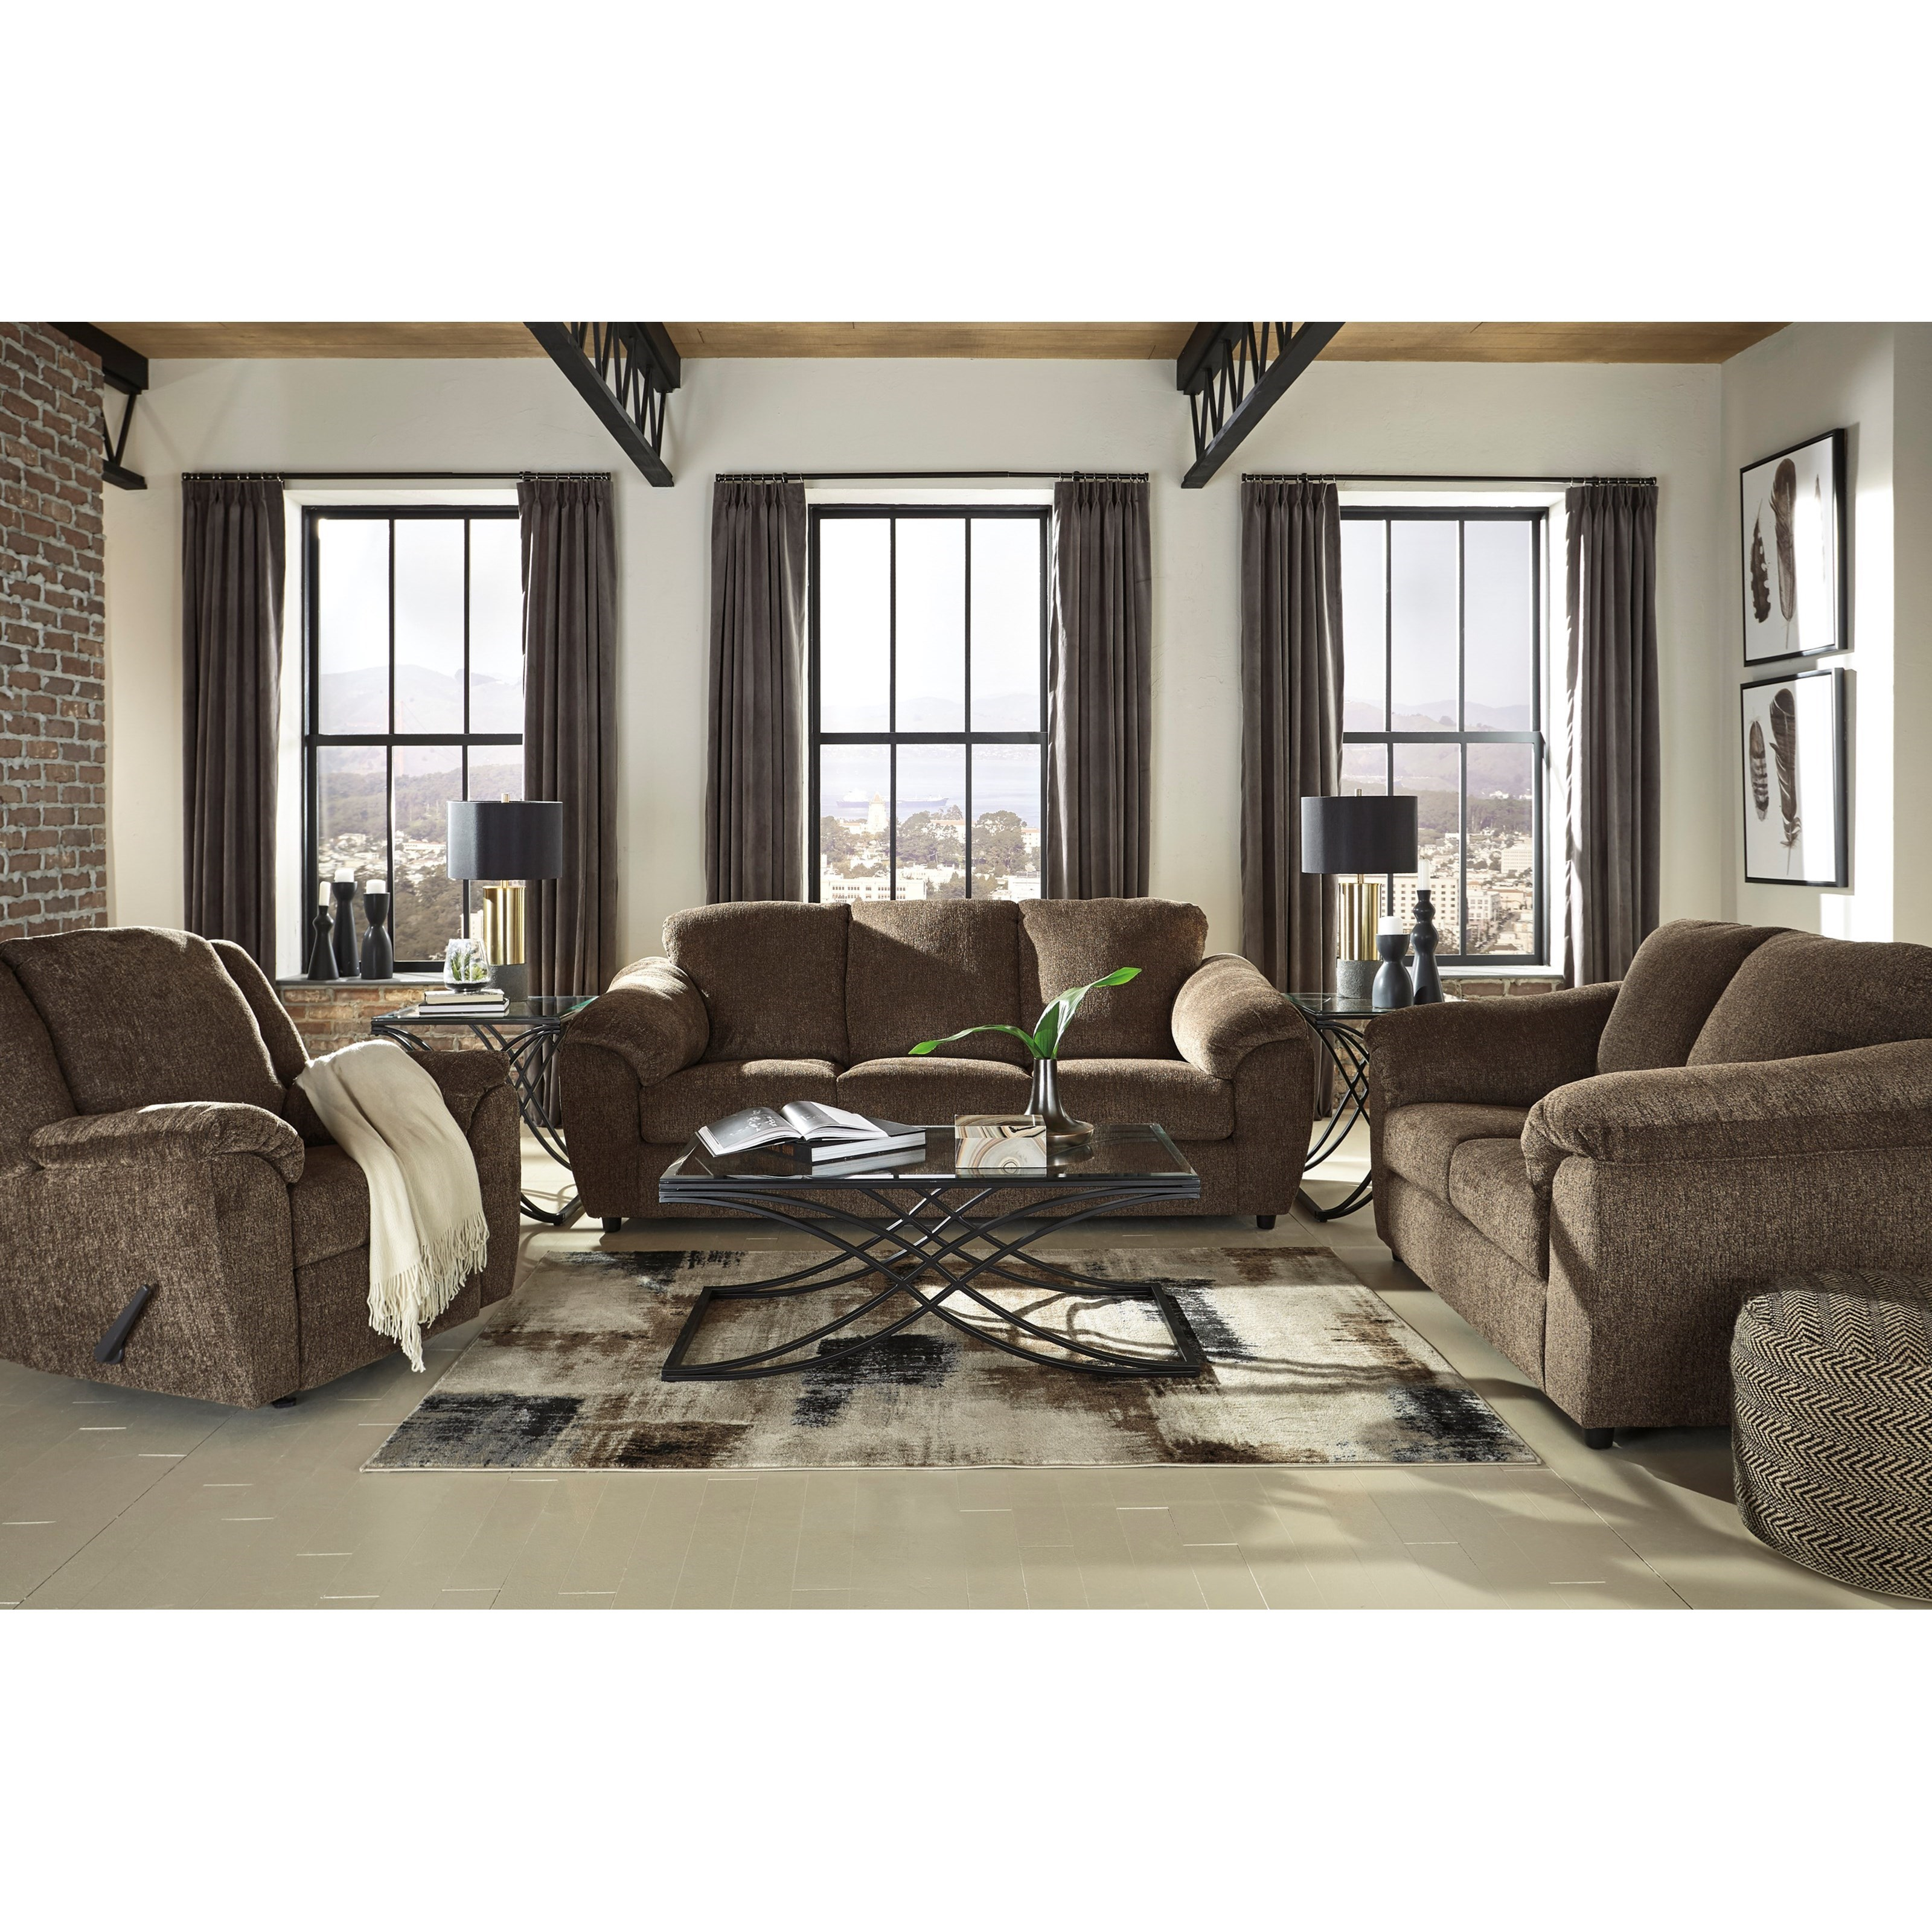 Signature Design by Ashley Azaline Stationary Living Room Group - Item Number: 93203 Living Room Group 2